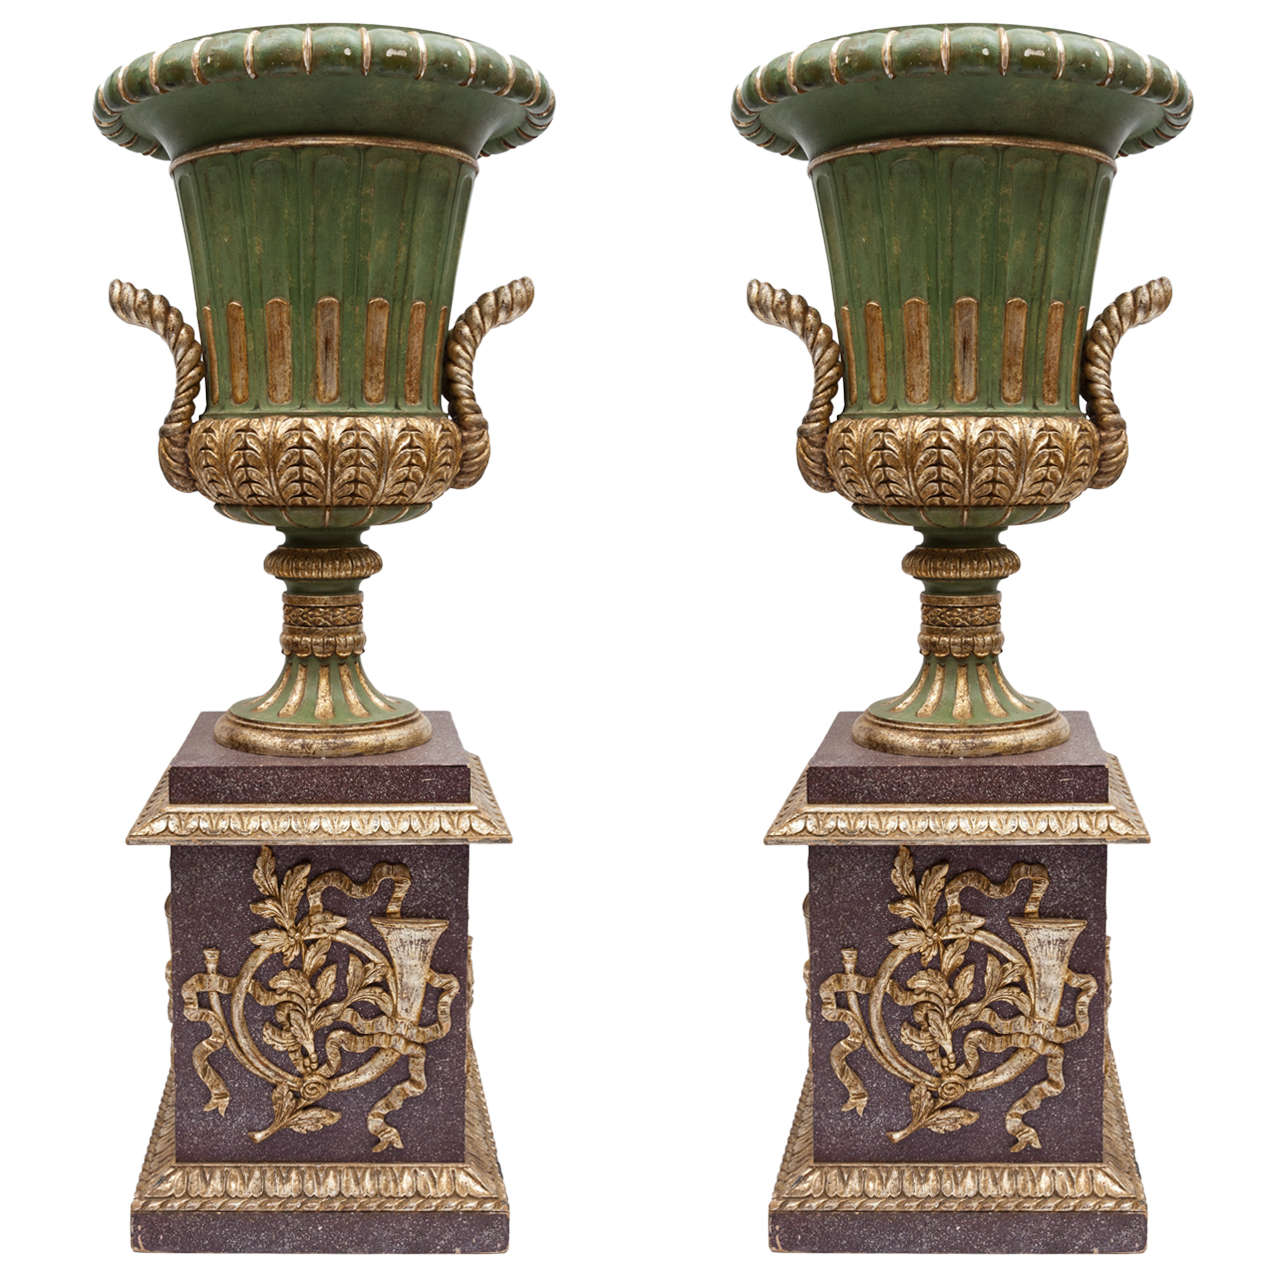 Early C20th Carved Wood Urns On Pedestals At 1stdibs